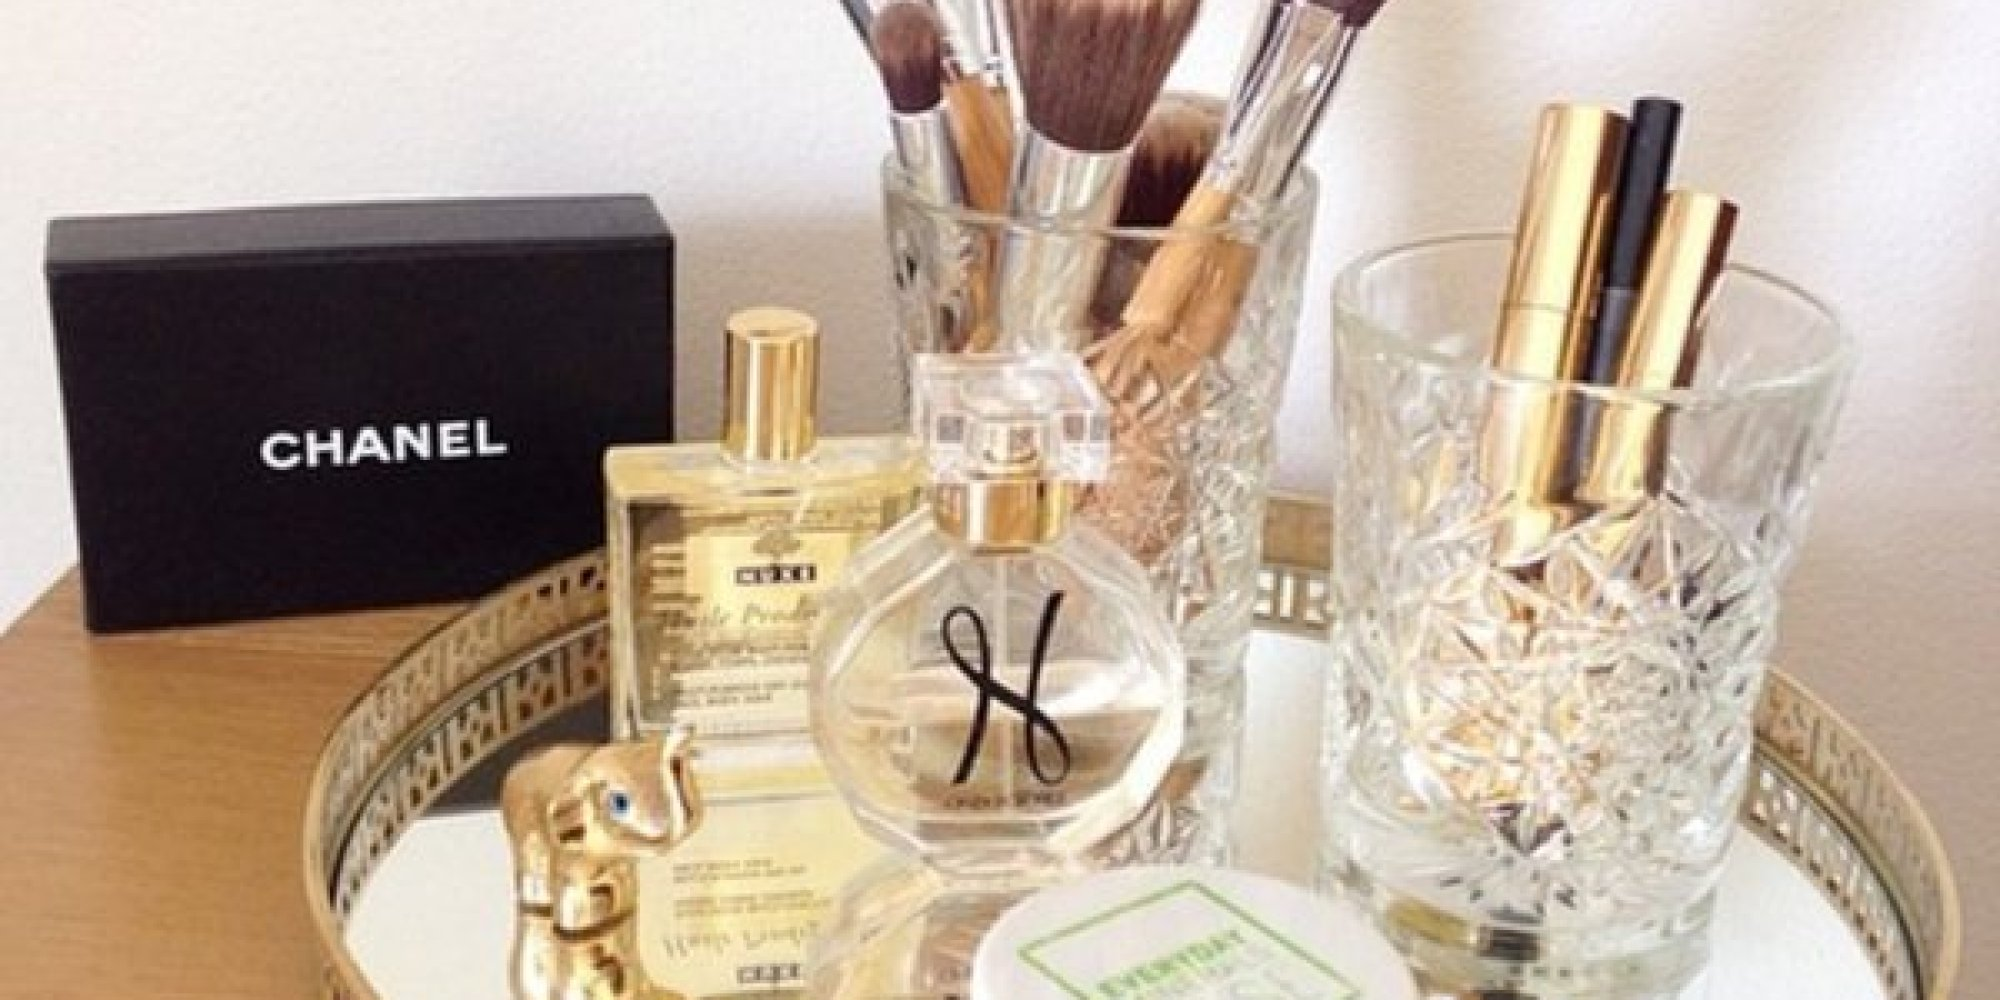 5 Makeup Tray Organizer Ideas To Help You Get Your Ish